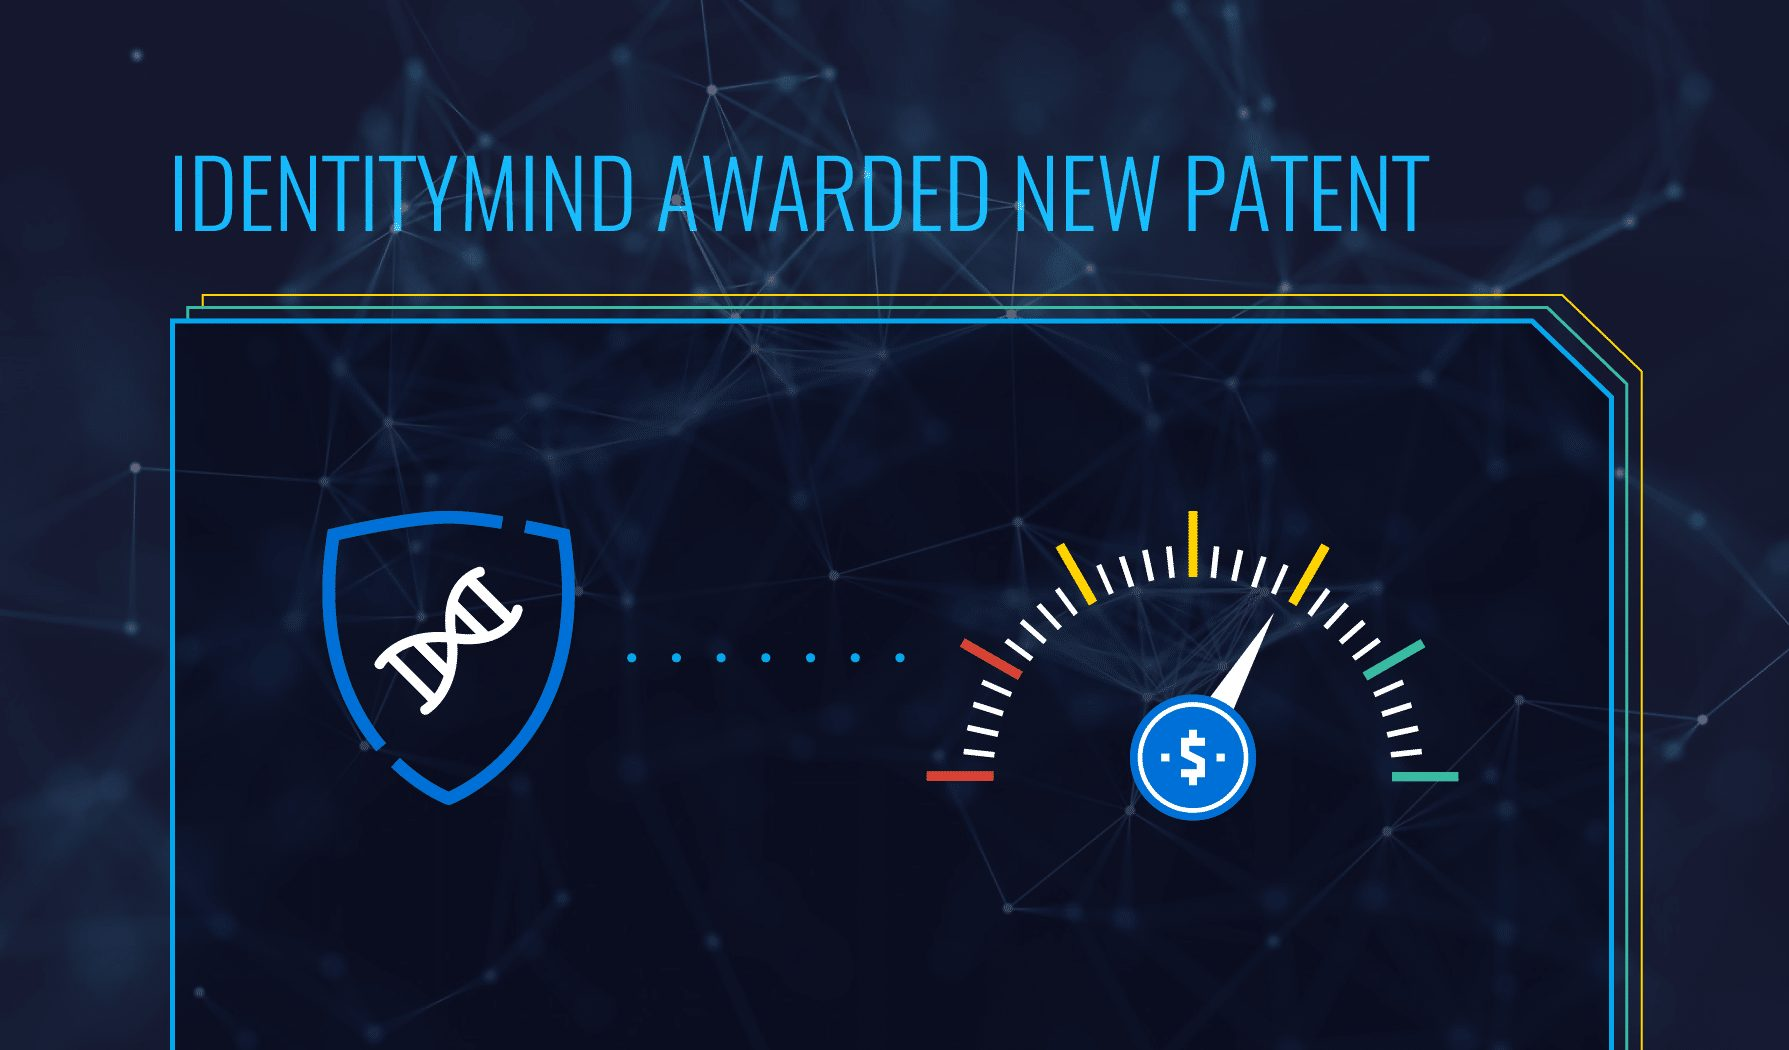 IdentityMind Awarded New Patent on Using the Digital Identity Graph to Uncover Risk in Digital Transactions